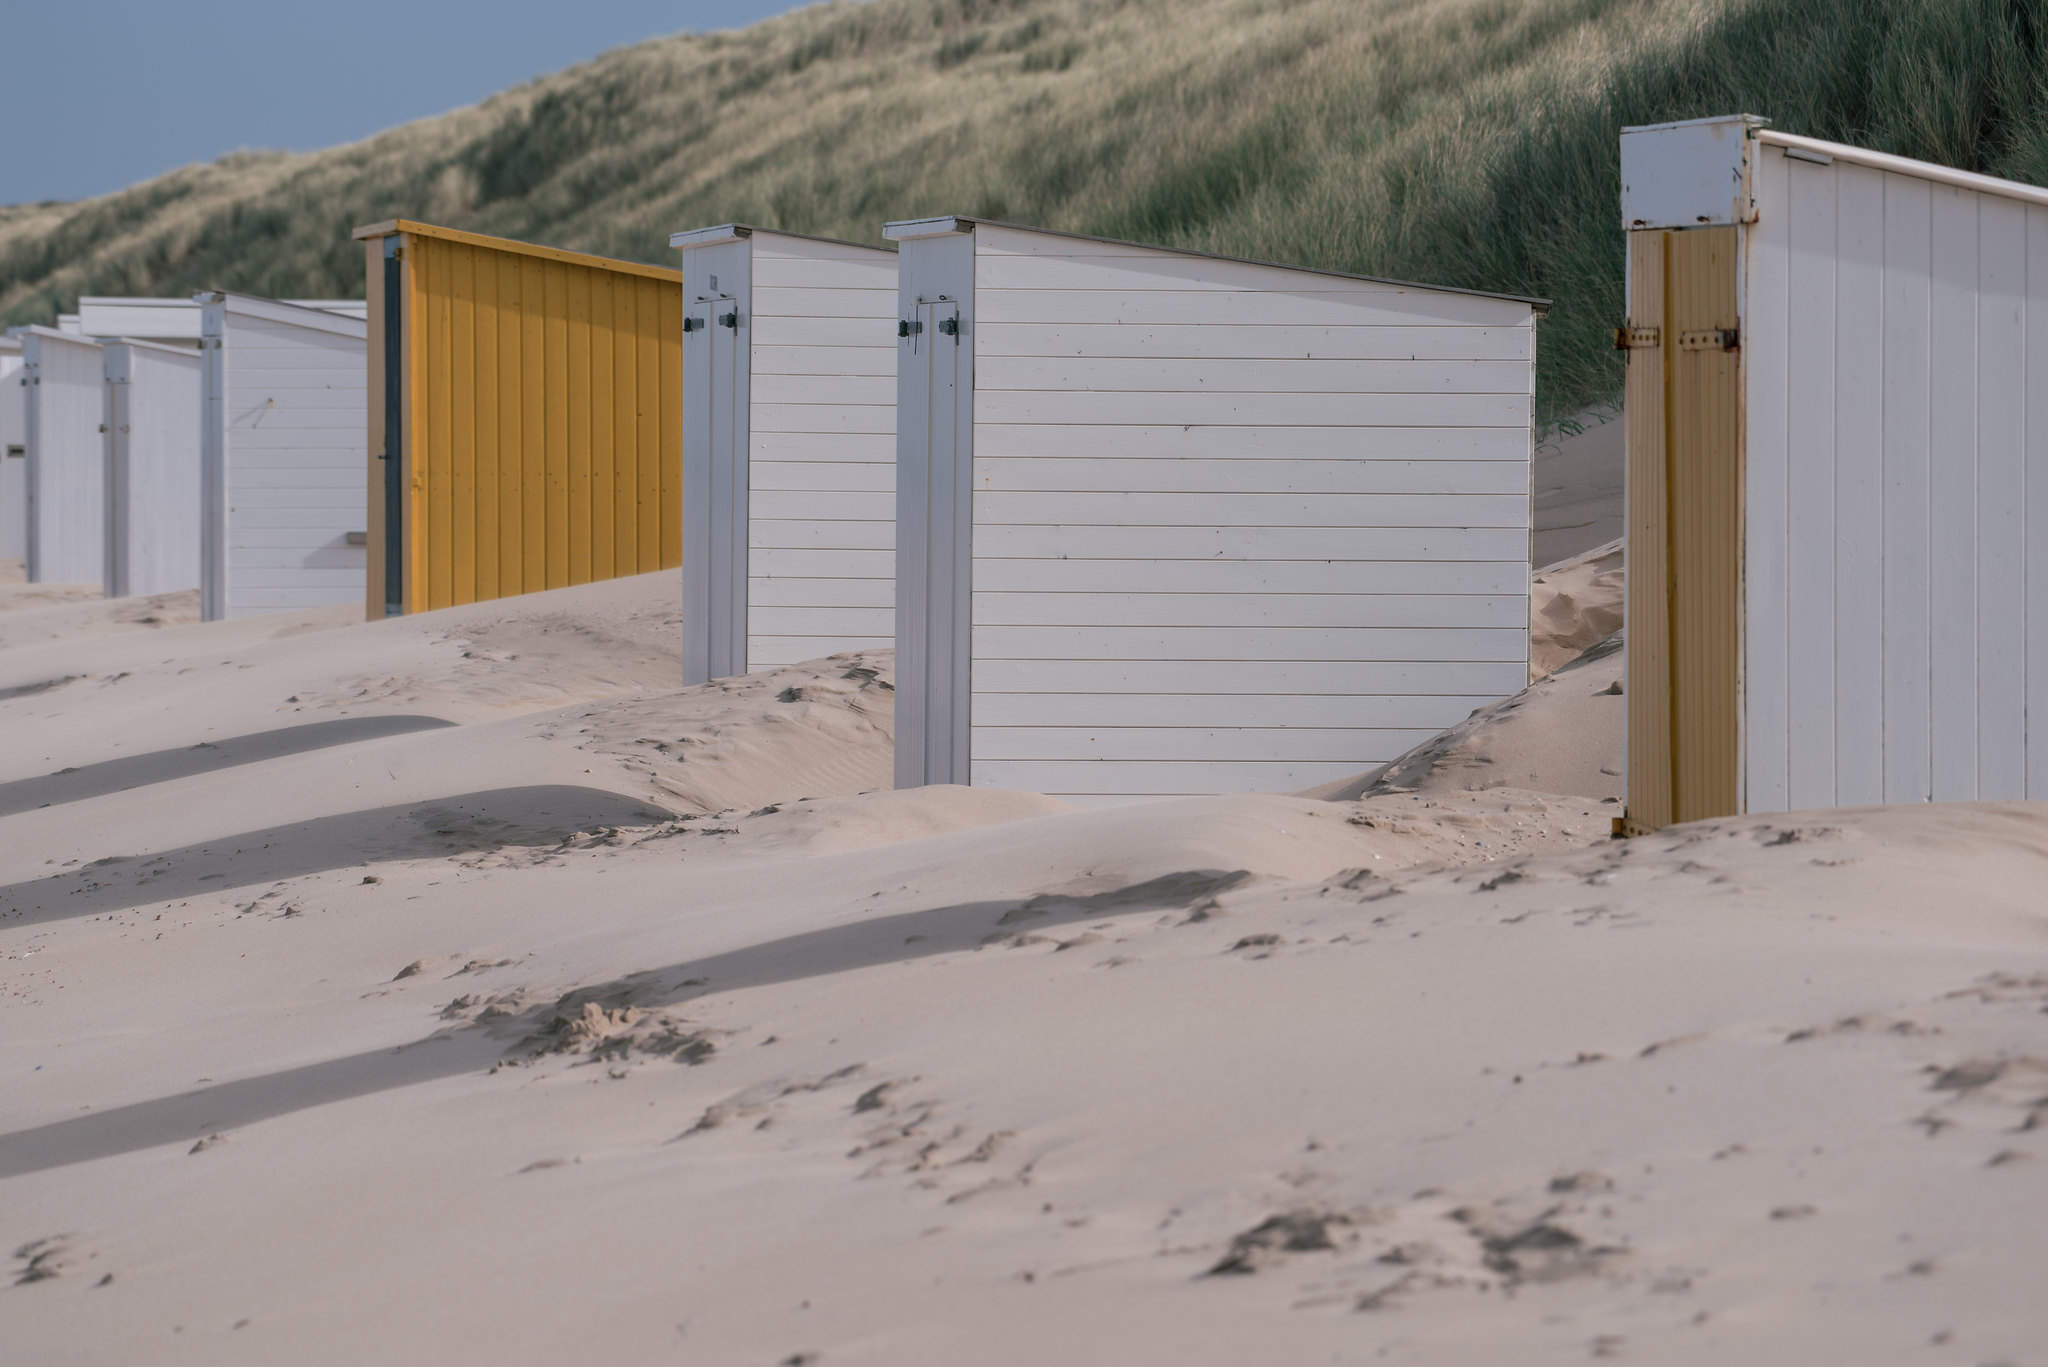 Beach cabins in Zeeland